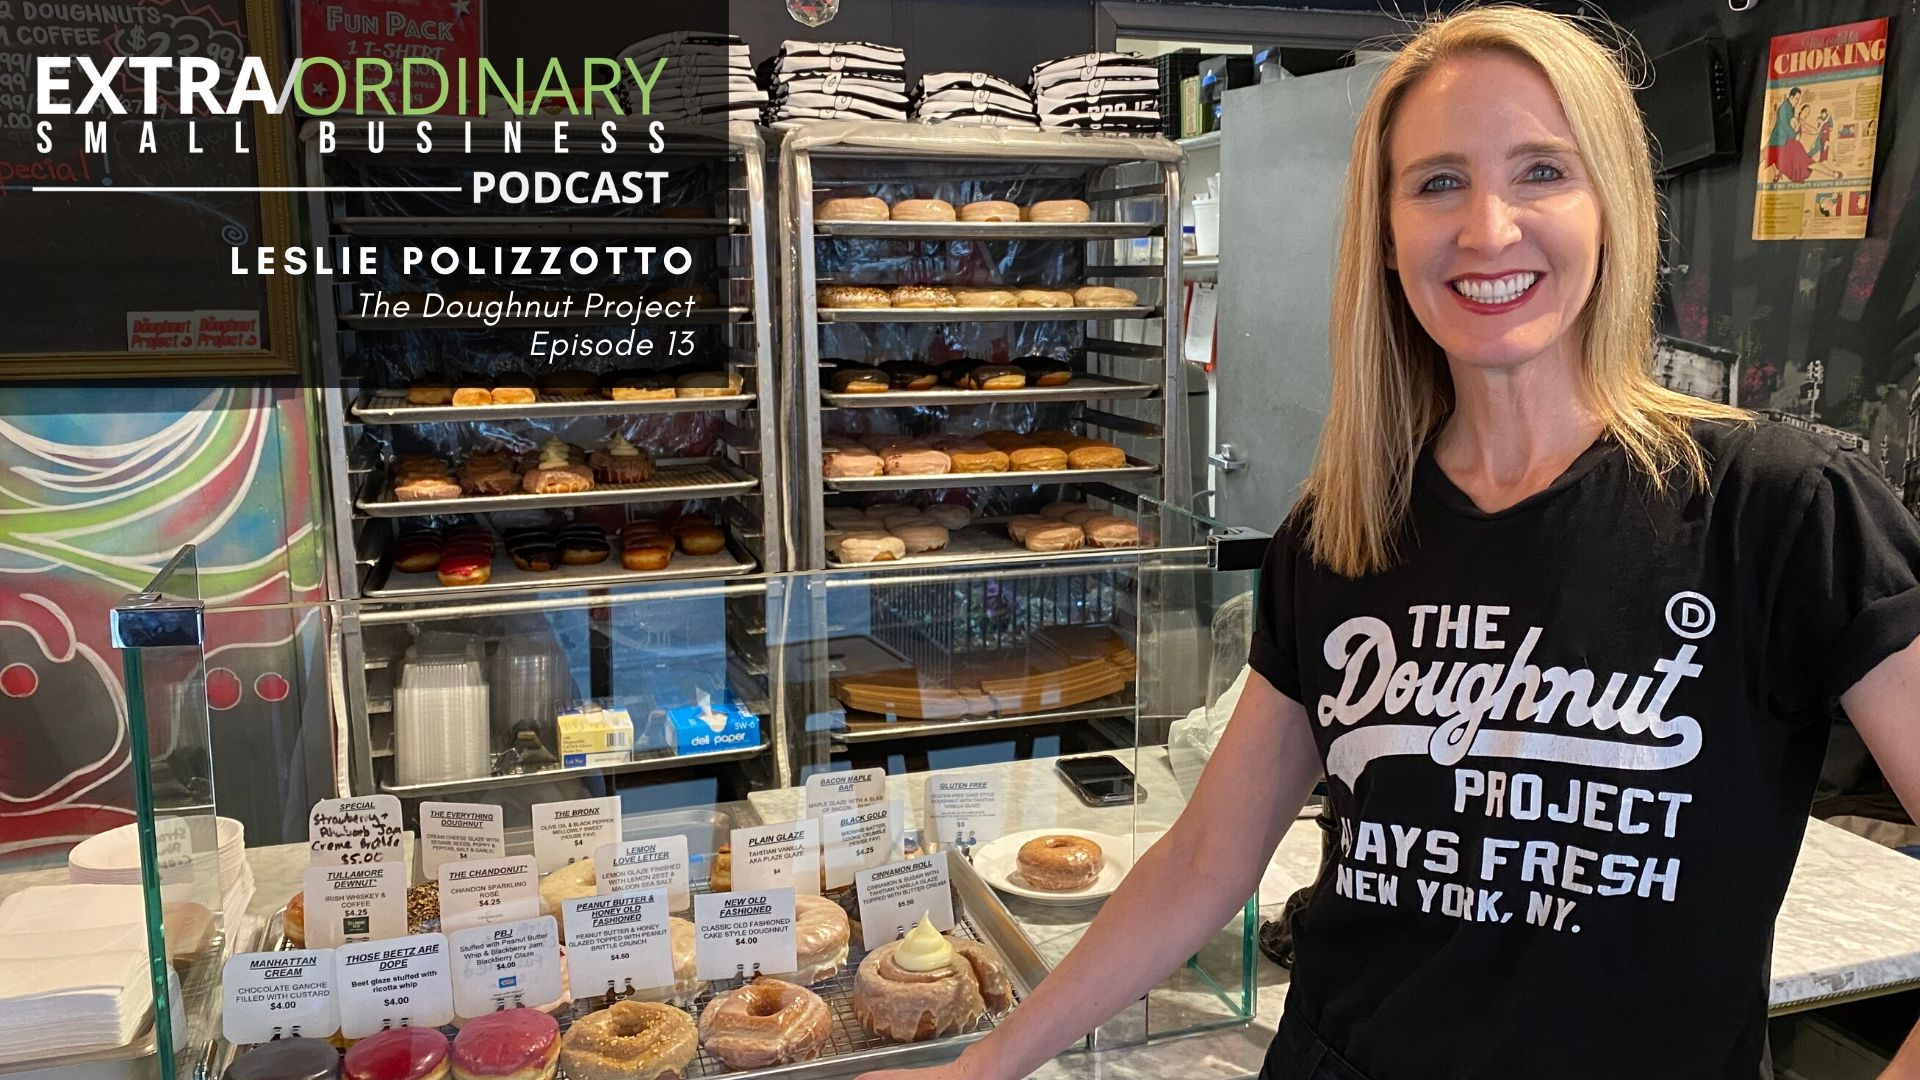 Leslie Polizzotto, Thw Doughnut Project, Ep. 13